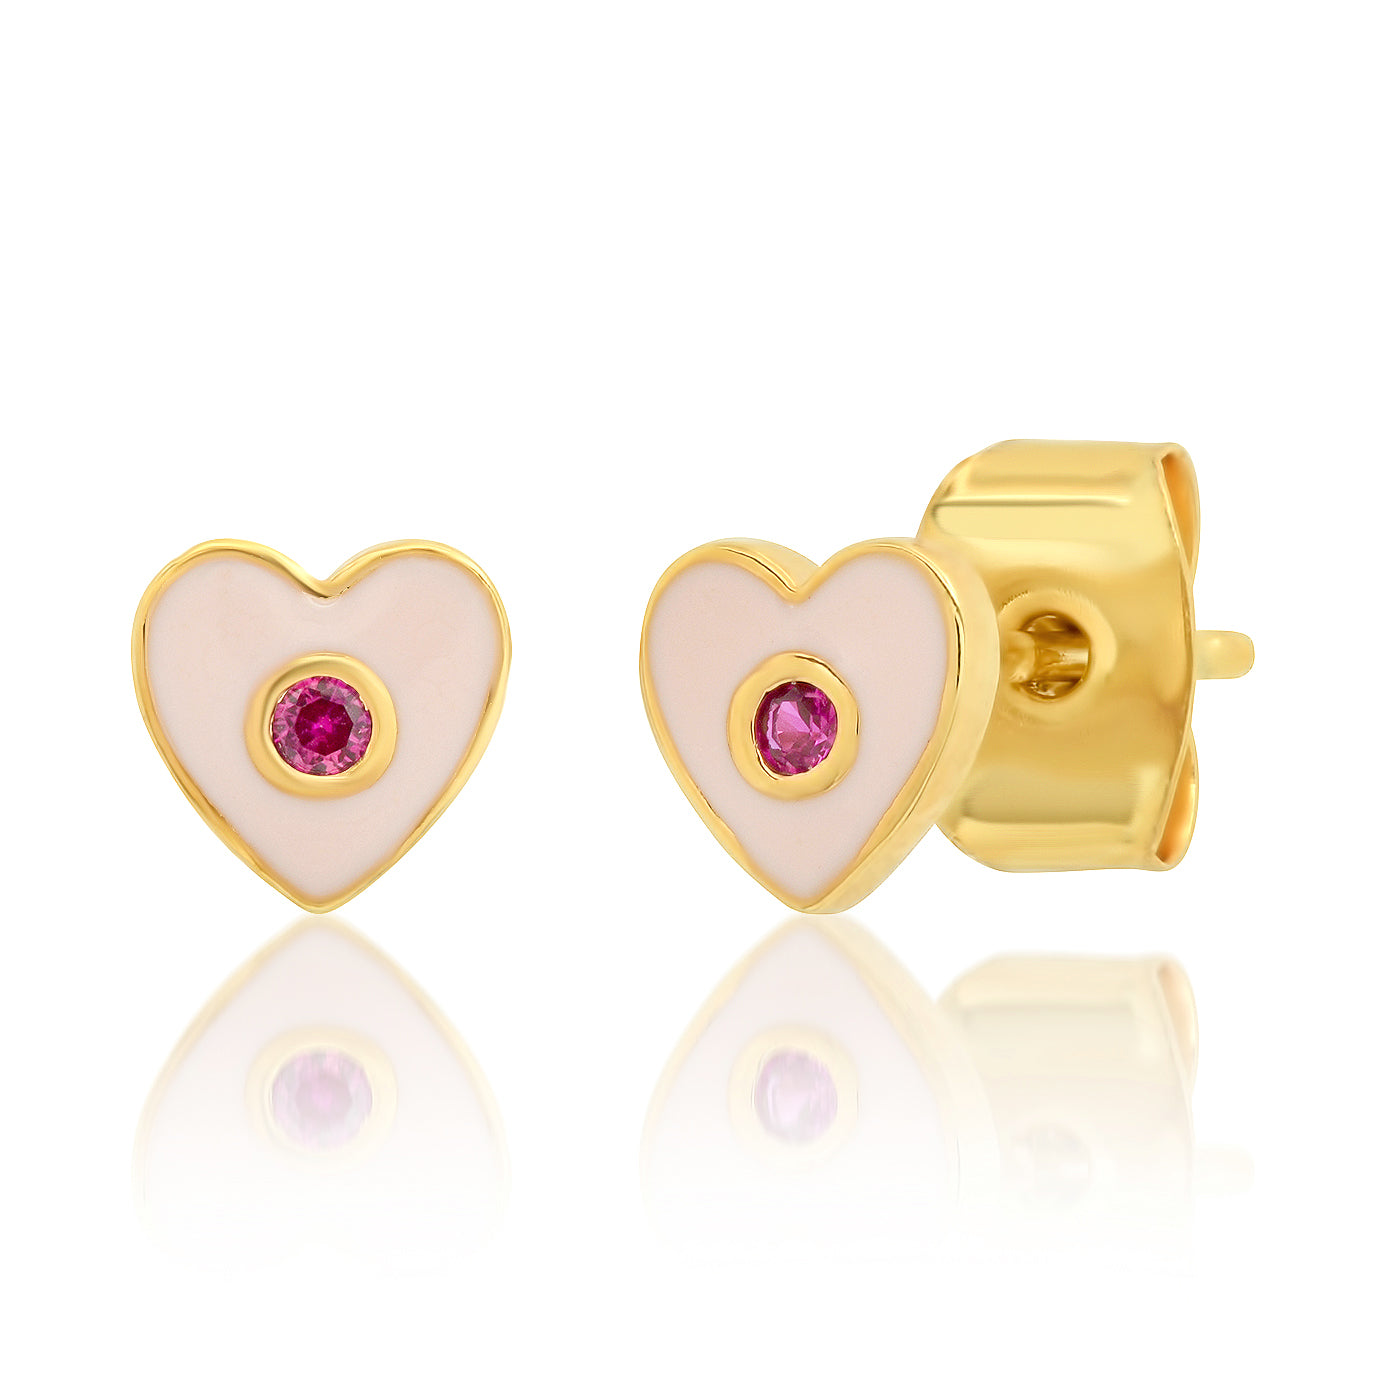 Enamel Heart Studs with CZ Accent